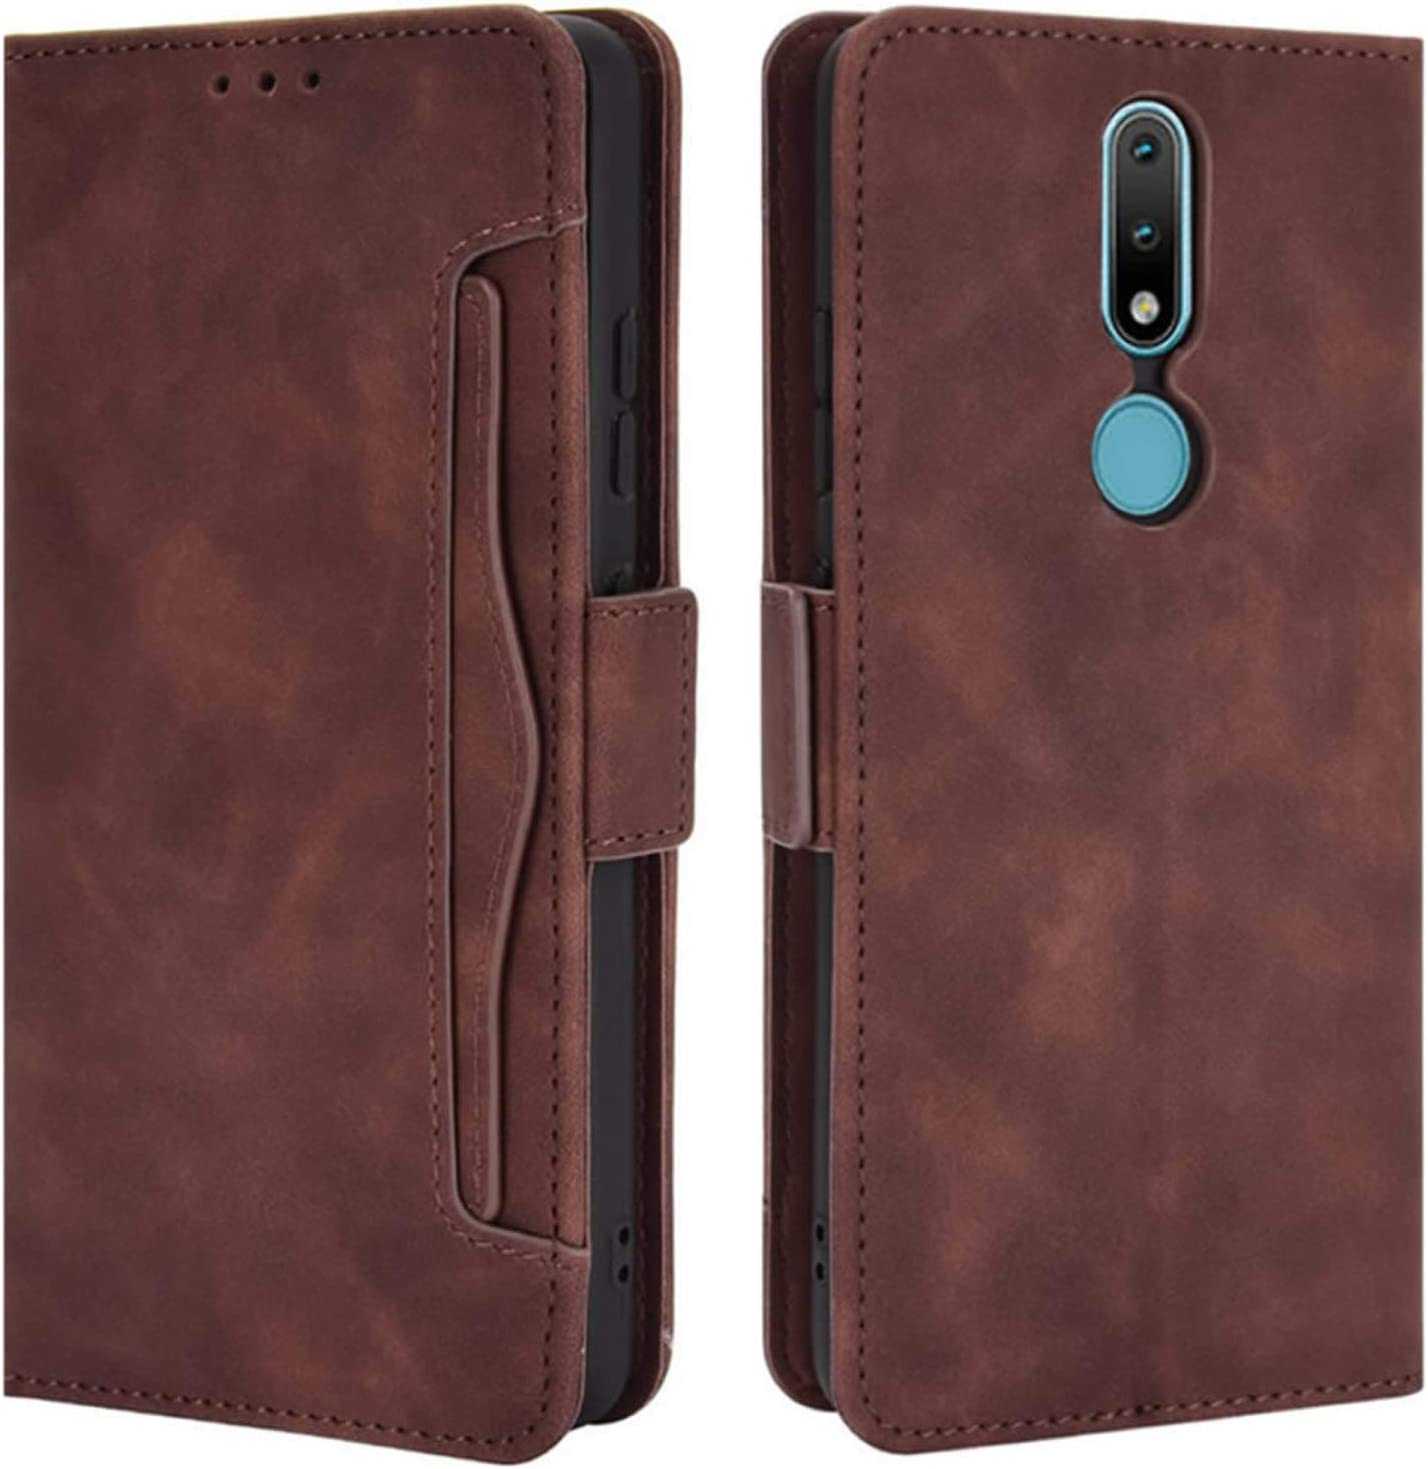 Blue and Kickstand Magnetic Closure Full Protection Book Design Wallet Flip Cover for Nokia 2.4 with Card Slots KERUN Case for Nokia 2.4 Filp Case